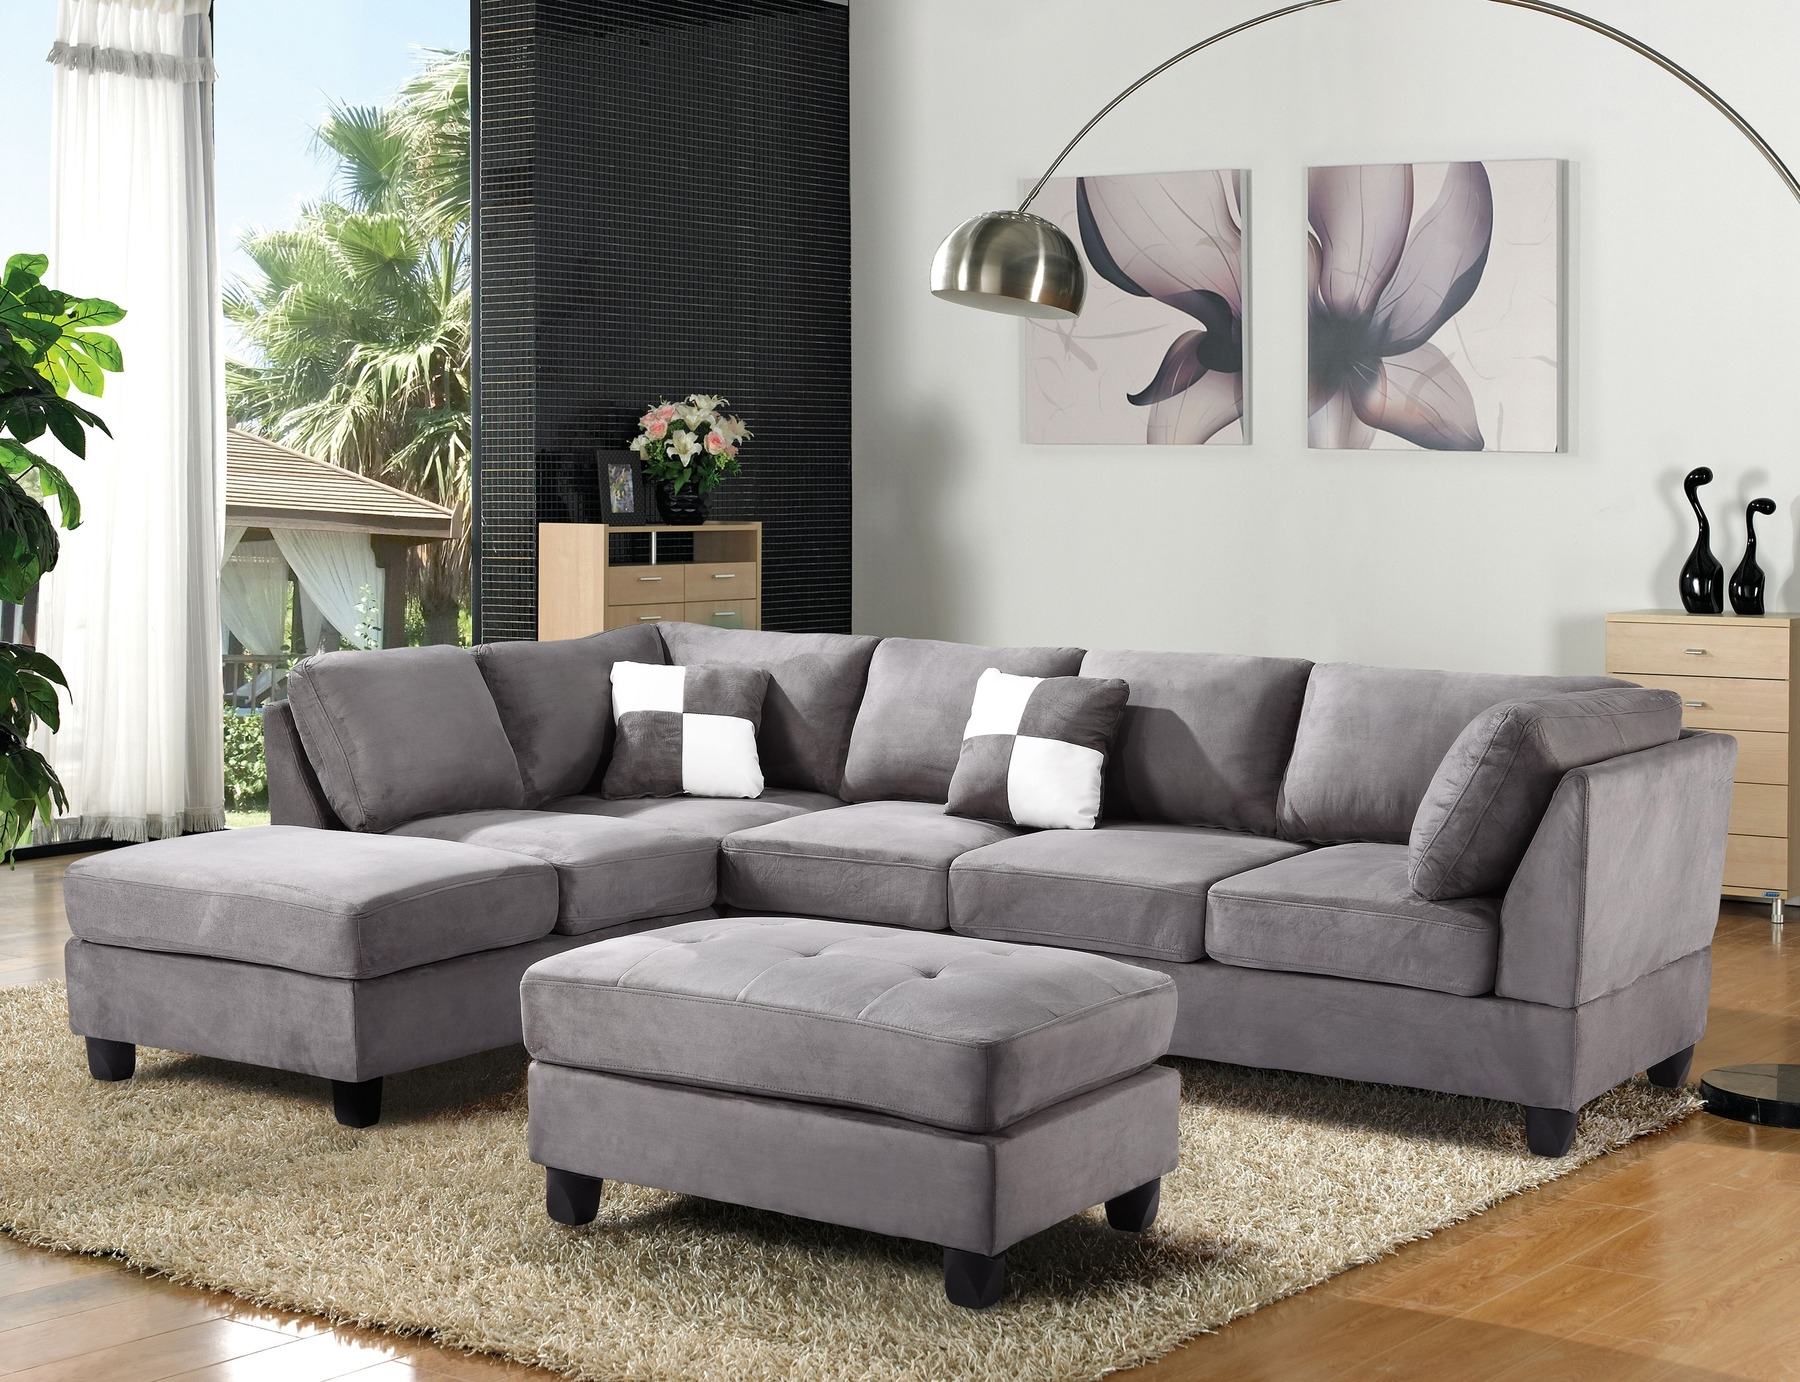 Sectional Sofas At Ashley Furniture With Regard To Current Sofa : Signature Designashley Toletta Chocolate Sectional Sofa (View 10 of 20)